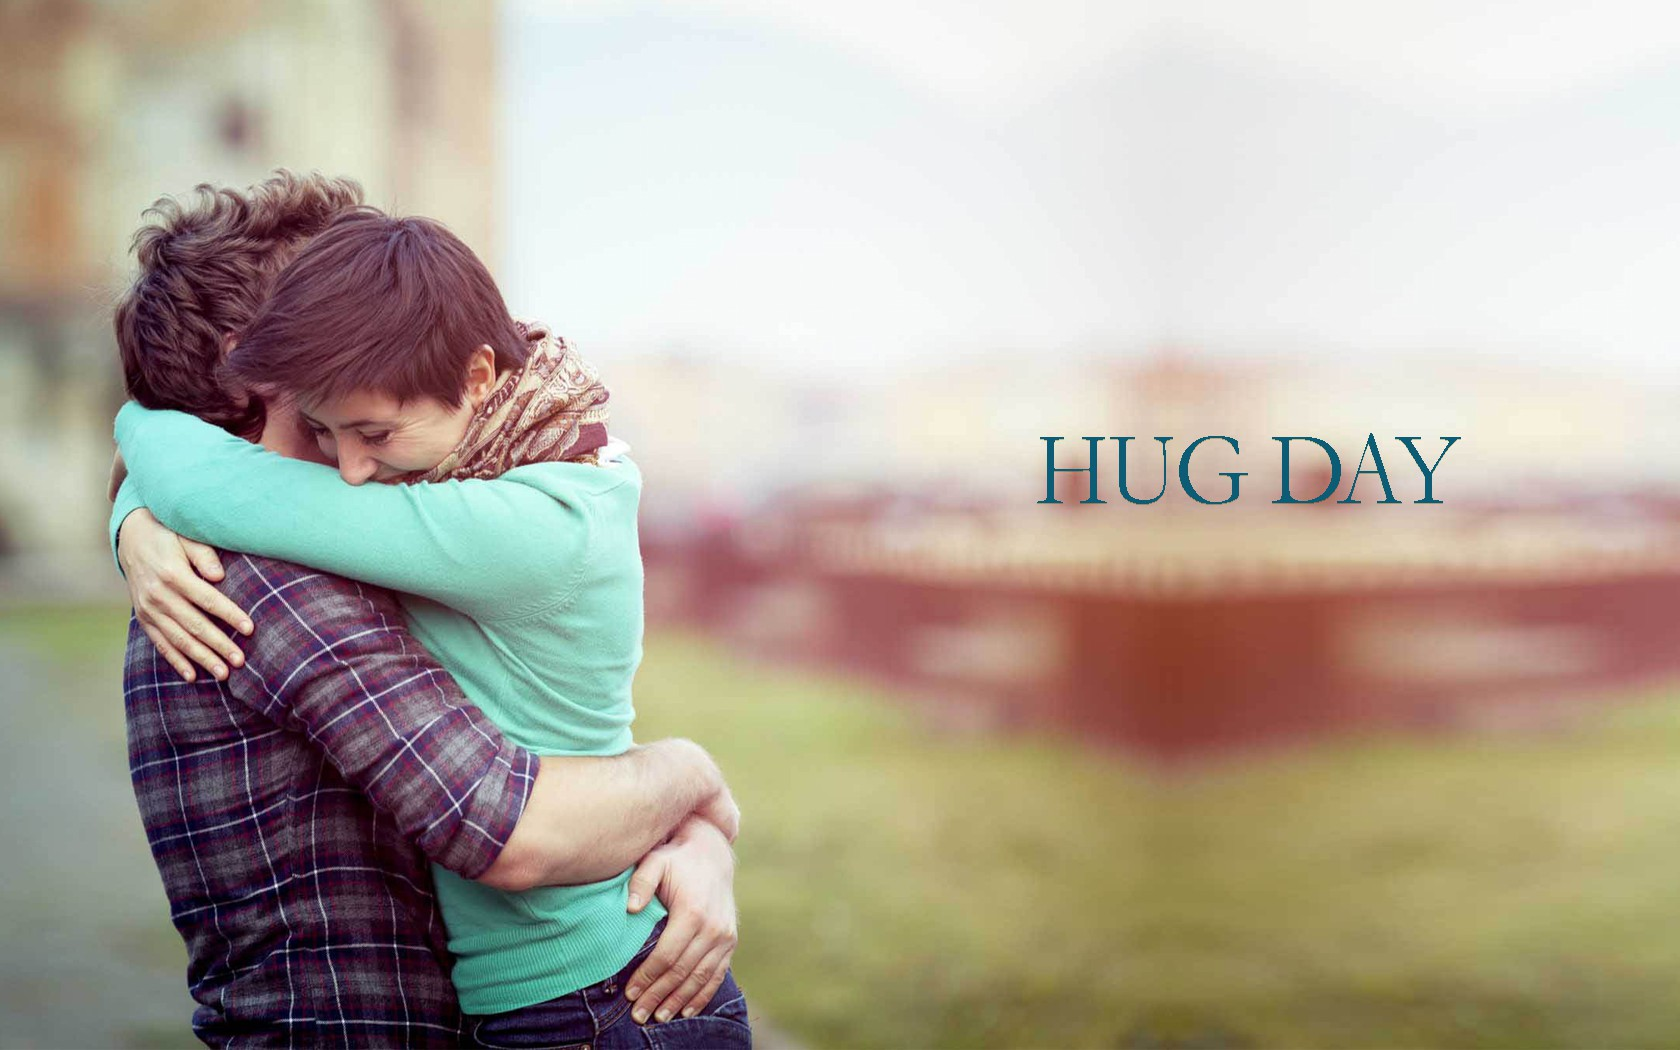 Cute Hugging Couples Wallpapers Download Wallpapers Of Hugging Love Couples Gallery